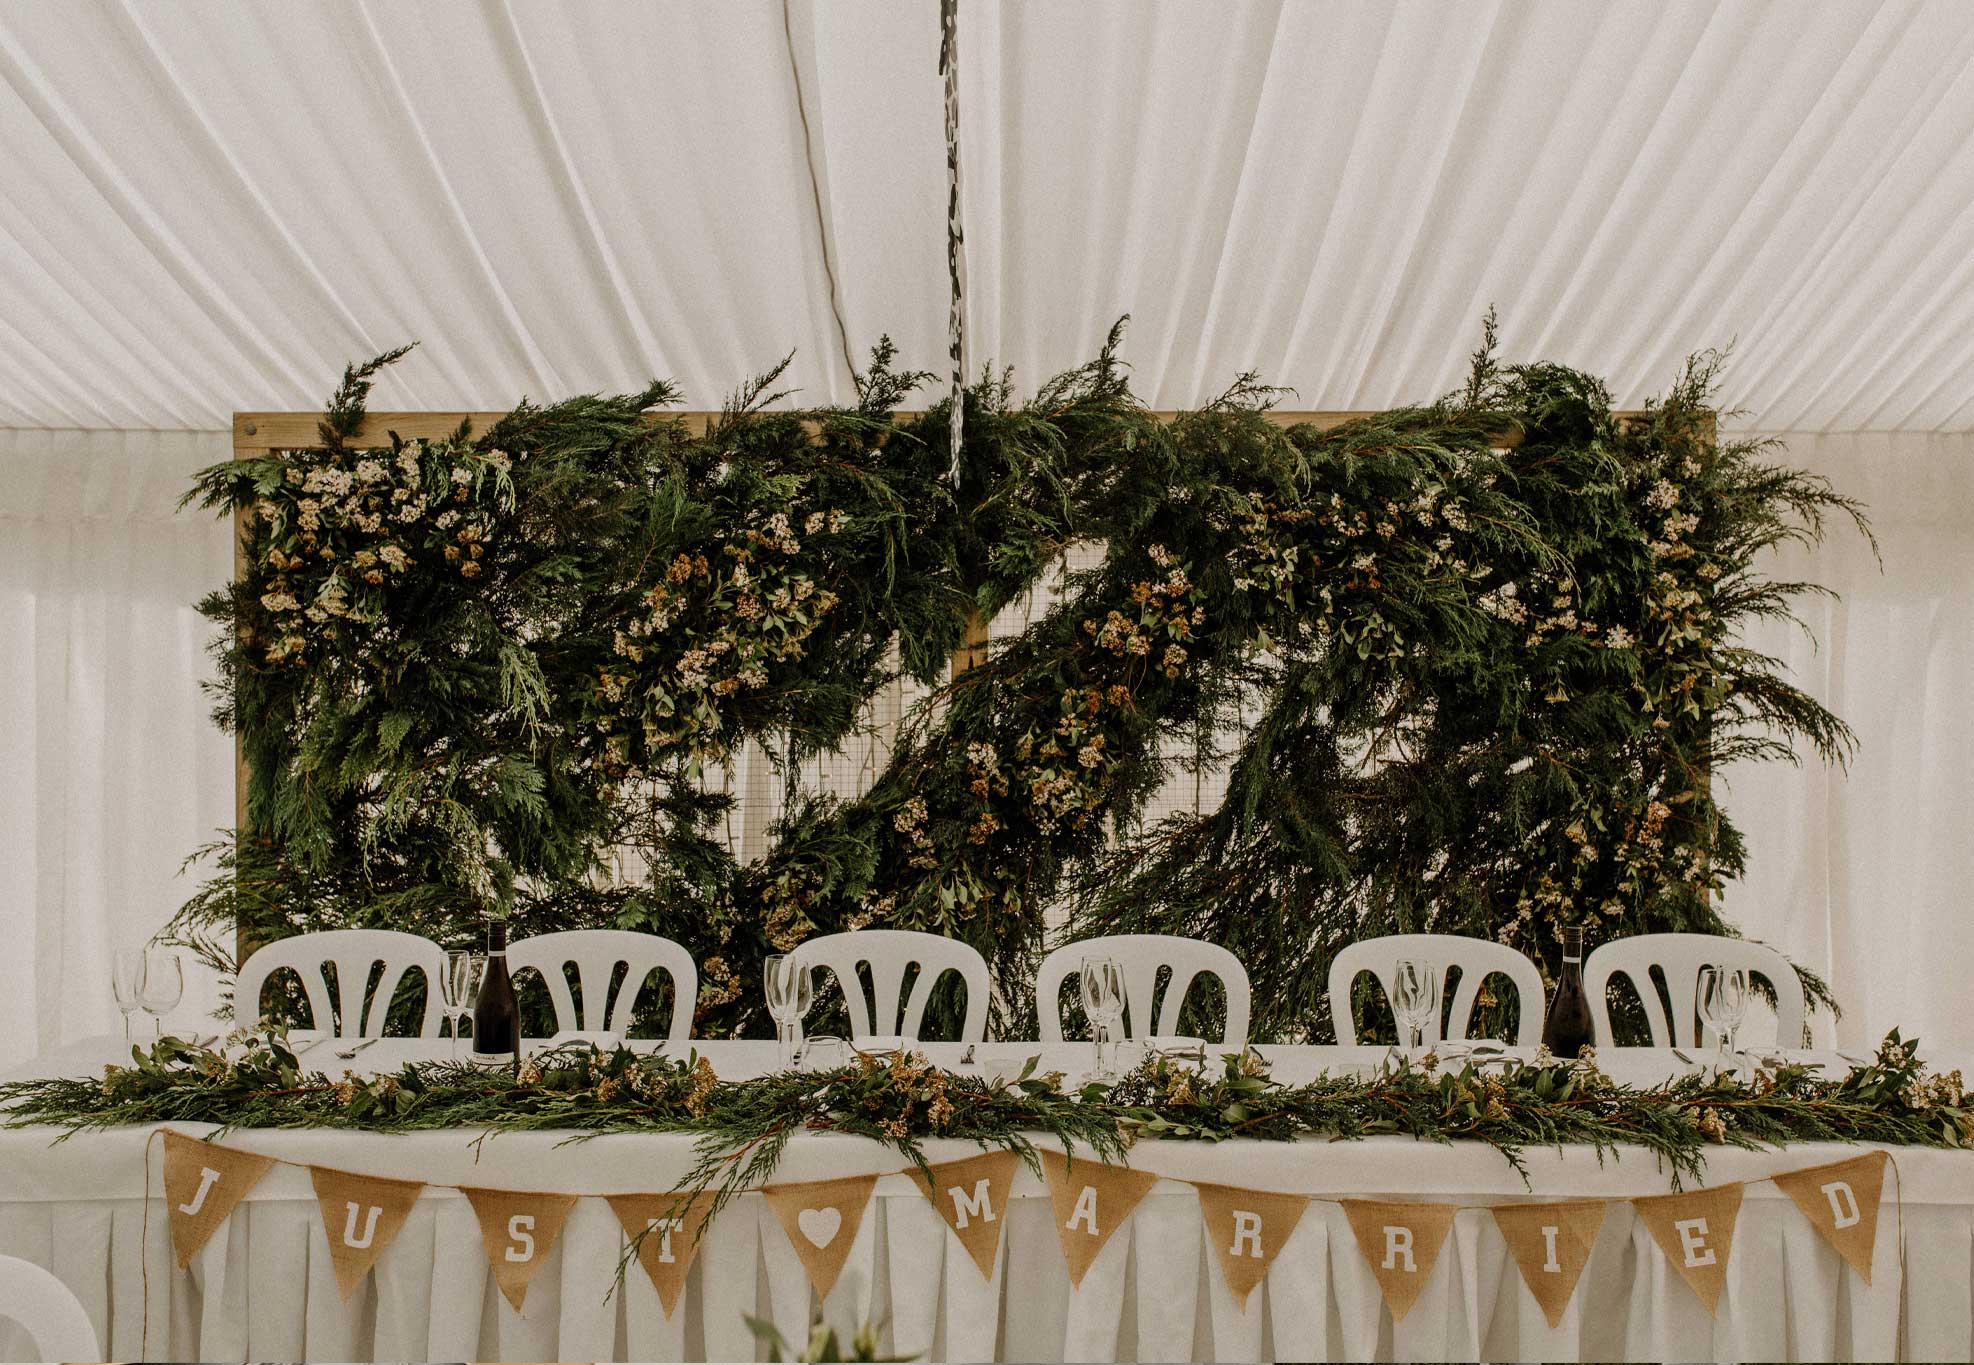 silk-estate-marquee-weddings-and-events-styling-and-hire-milano-chair-3